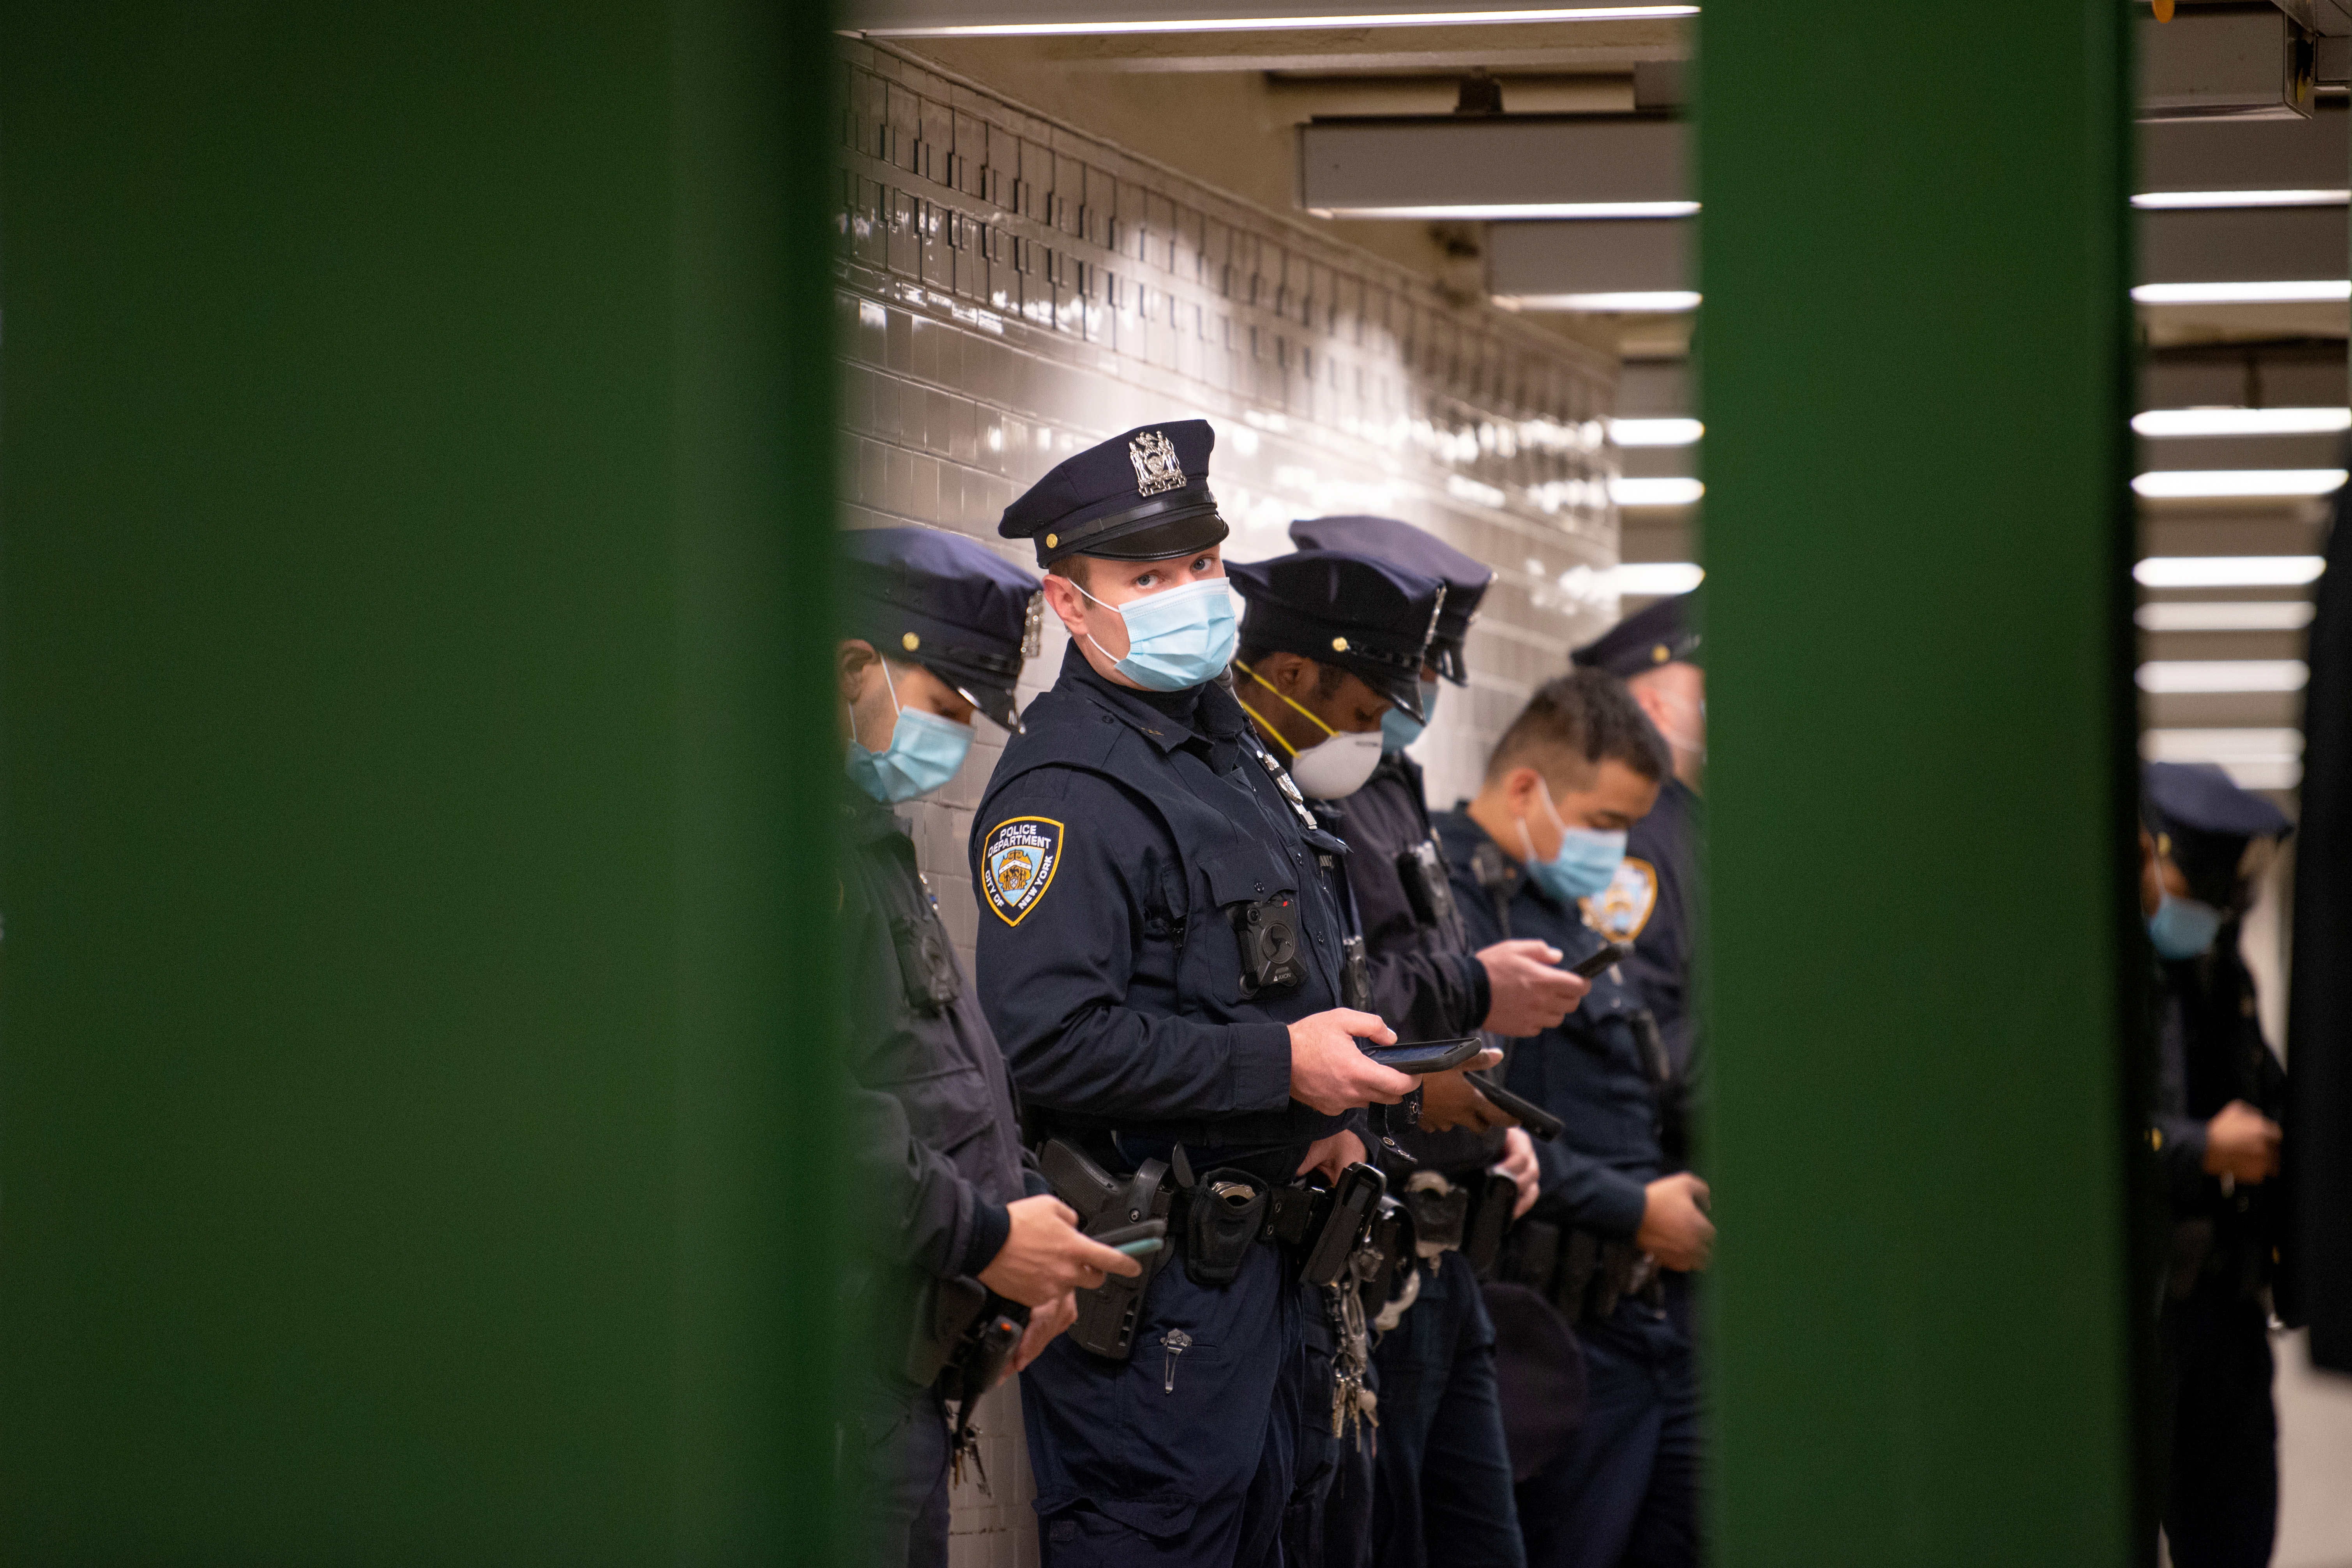 An NYPD officer wearing a mask looks at the camera during a briefing in the Union Square subway station May 6, 2020 in New York City.